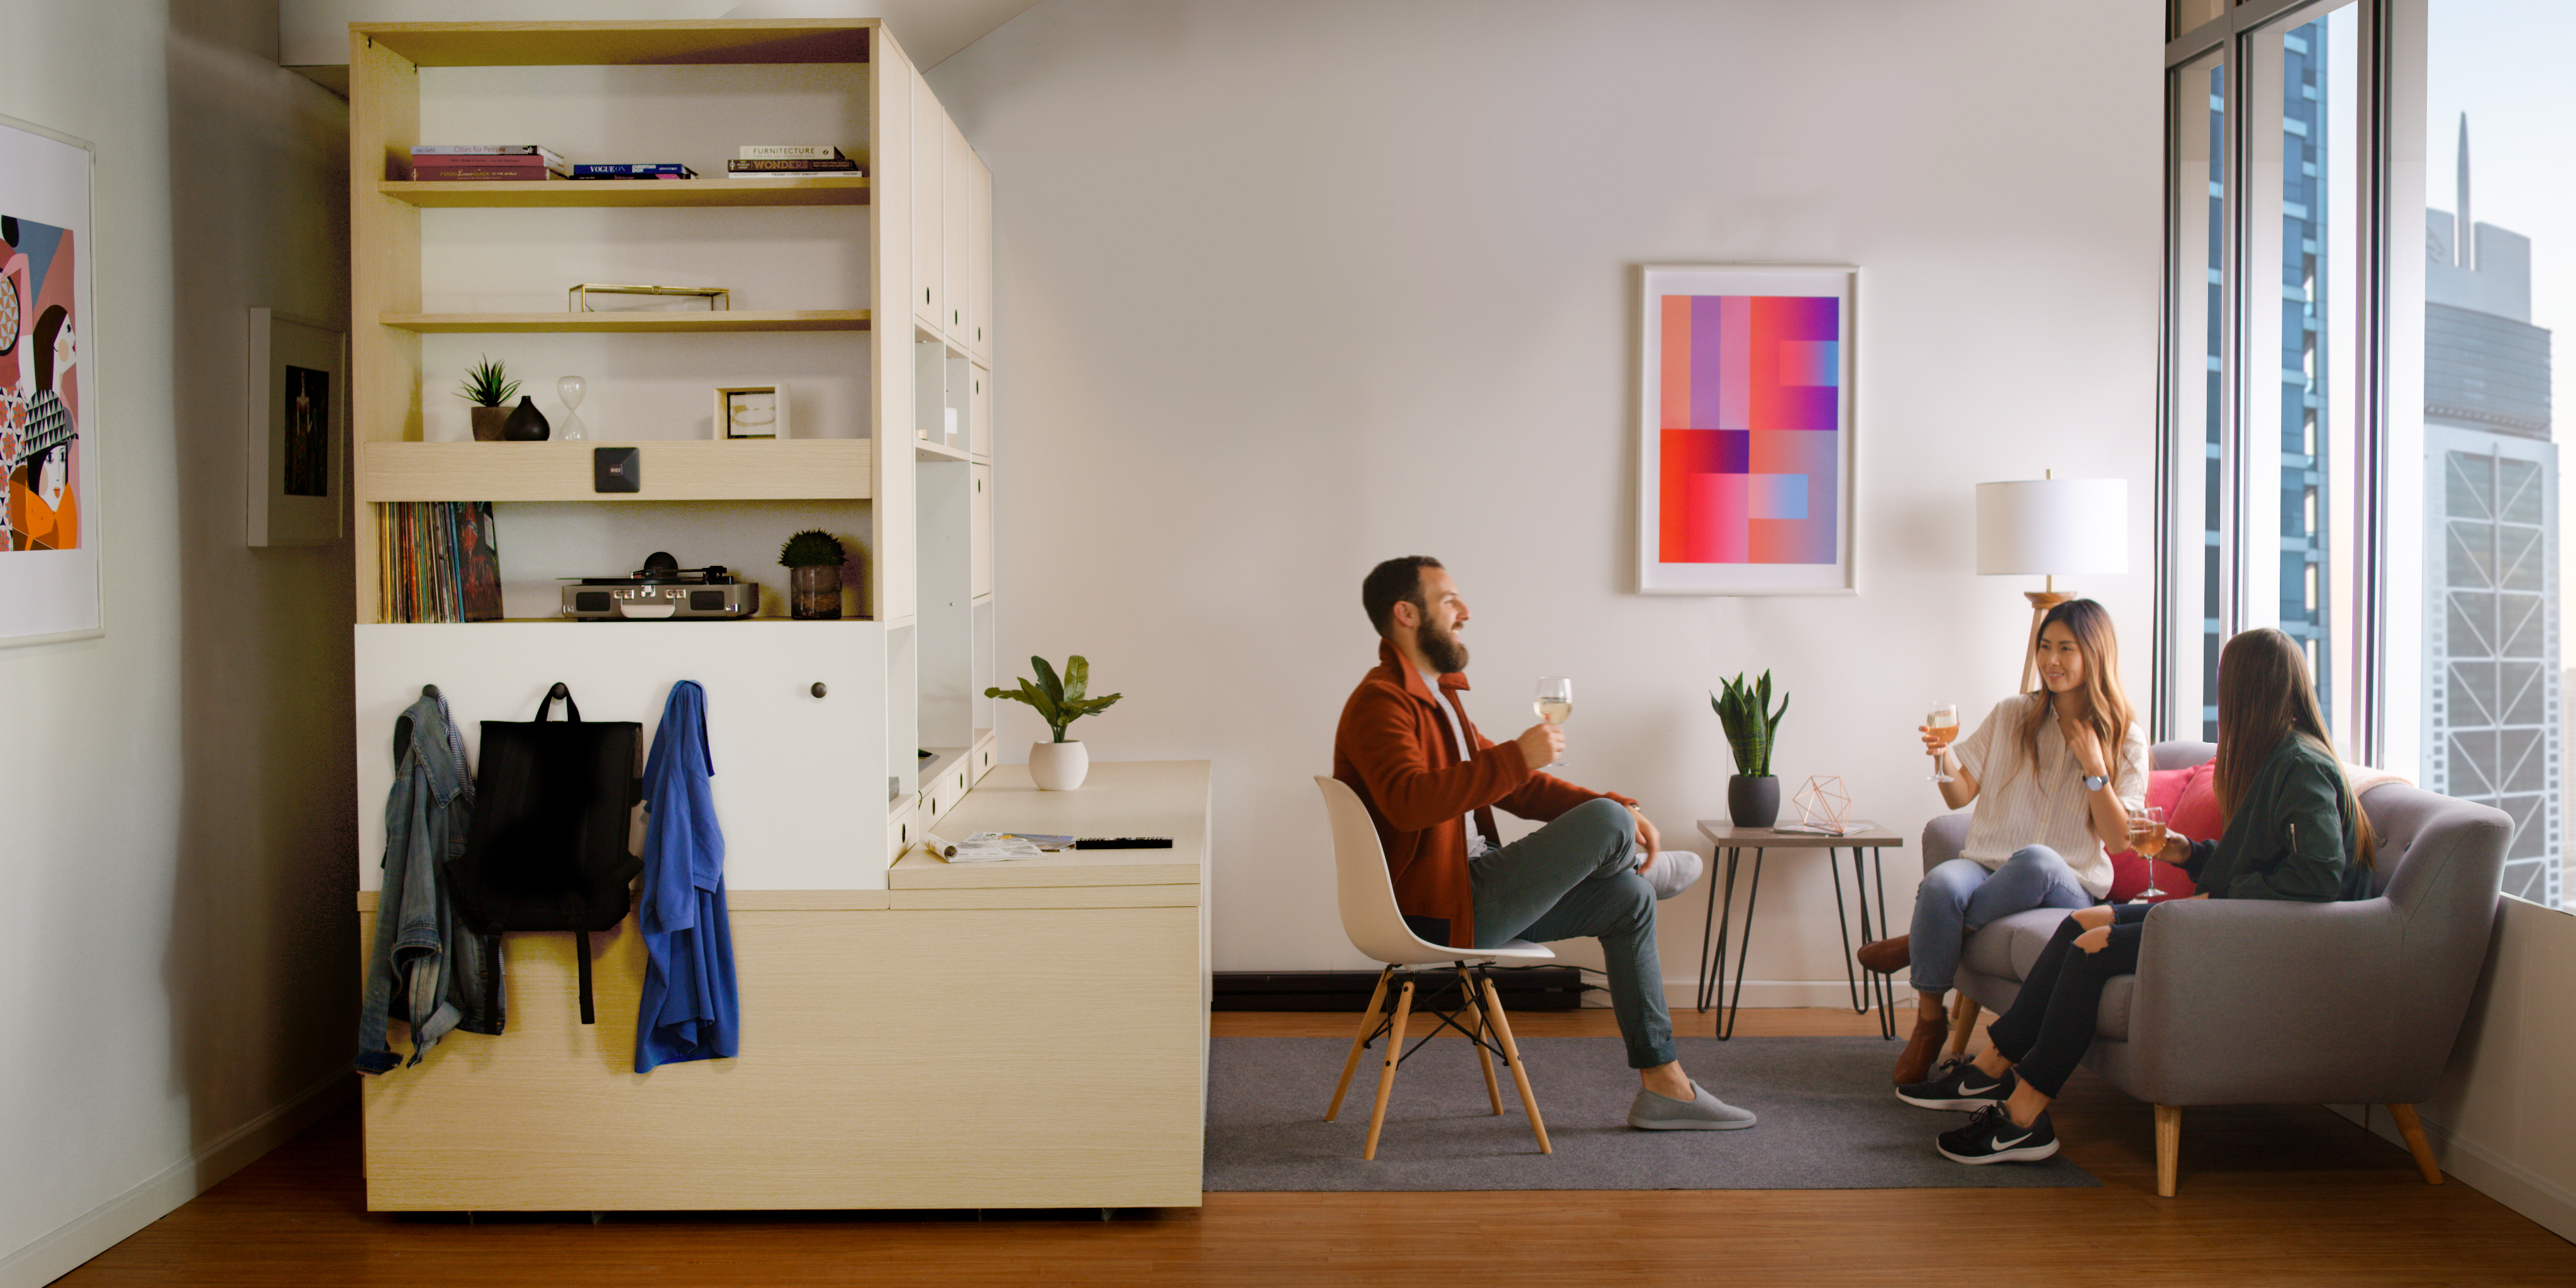 This robotic furniture system could be coming to an apartment building near you